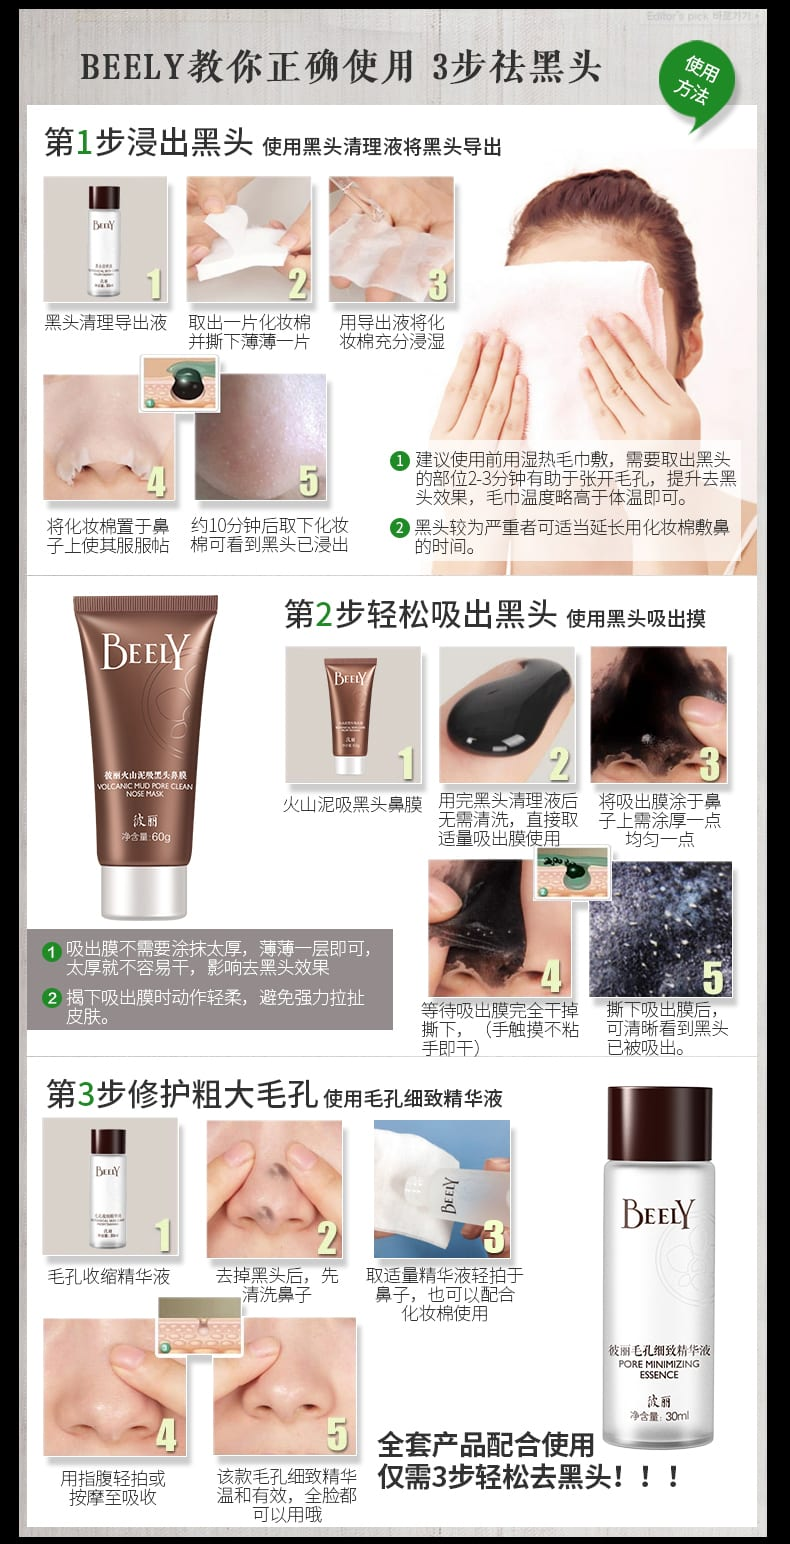 Beely Volcanic Mud Pore Cleanser Set - usage